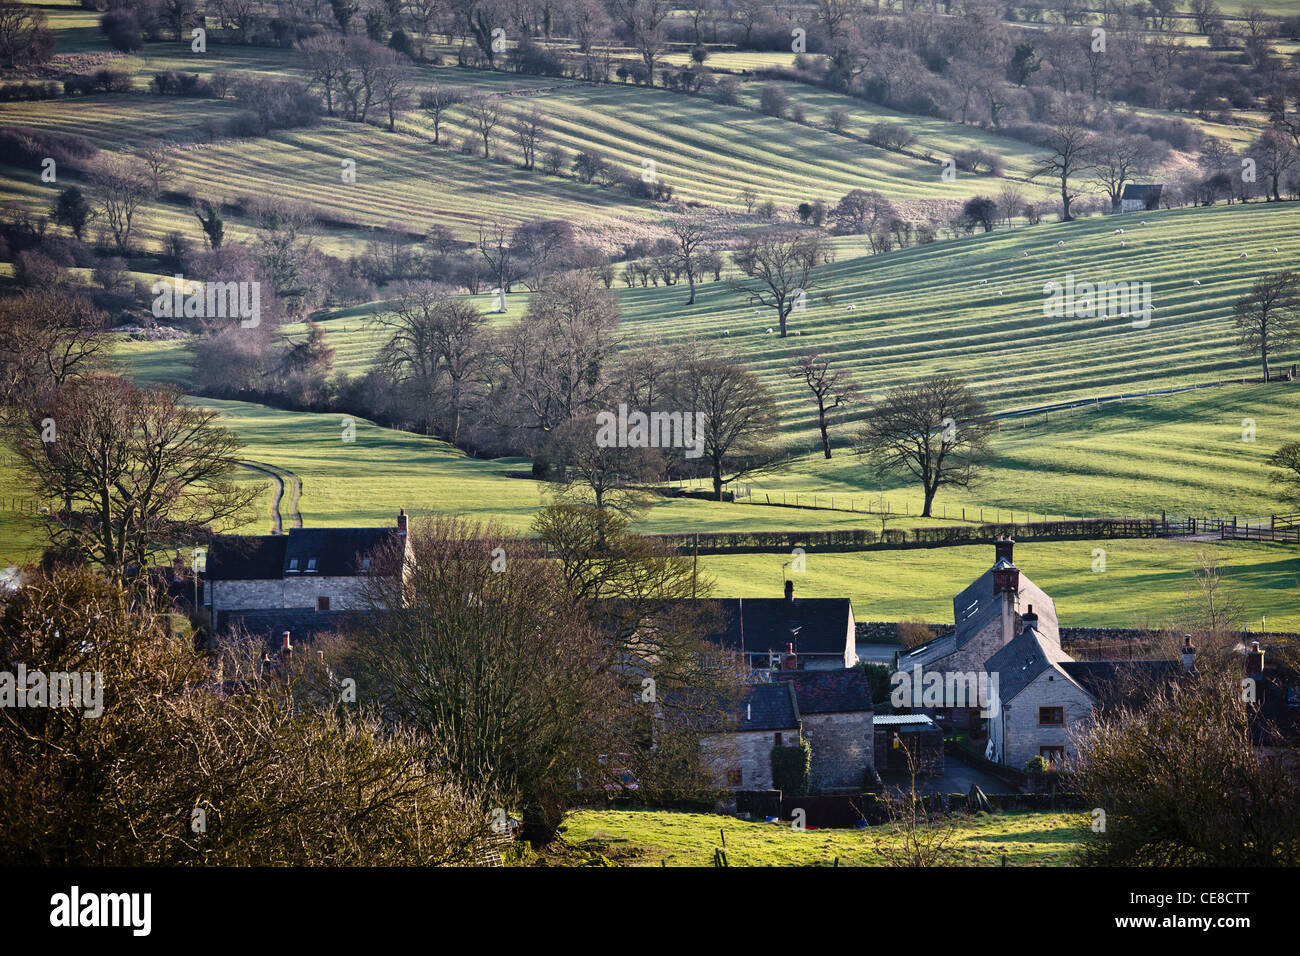 Medieval ridge and furrow markings in fields at Brassington, Derbyshire - Stock Image